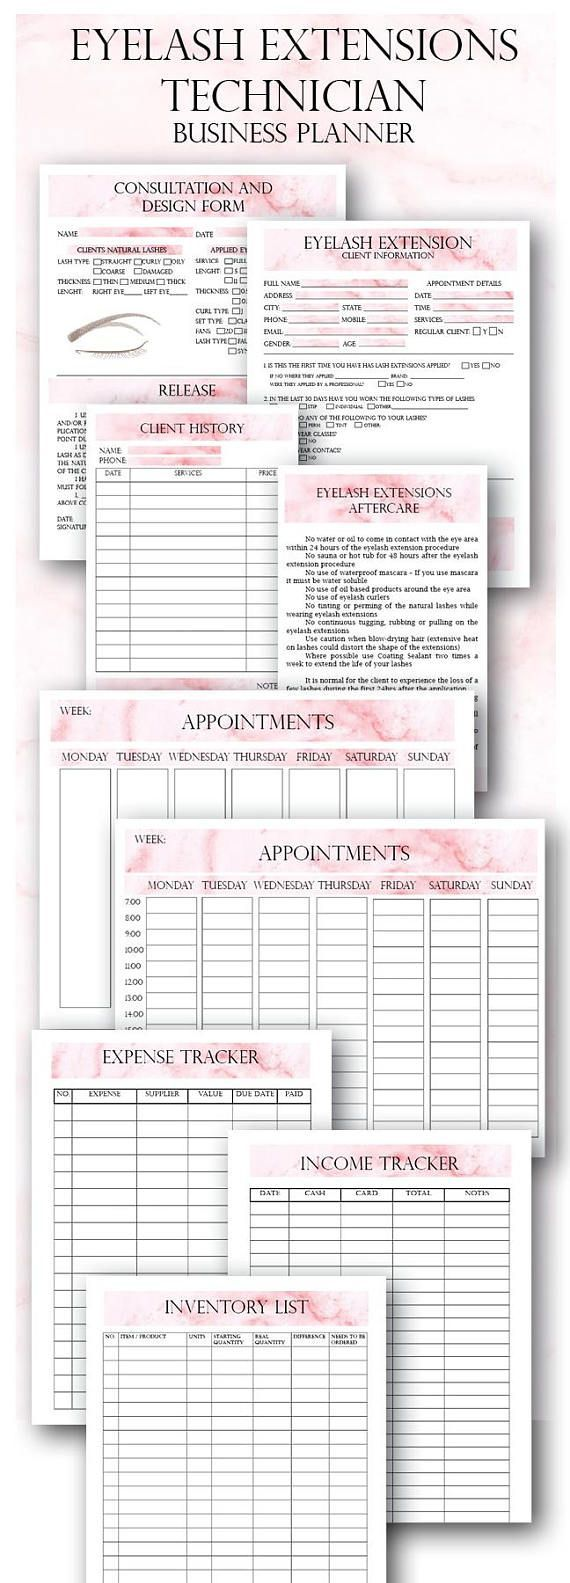 Pink Eyelash Extension Client Forms, Printable Client Information Form, Eyelash Consultation Form, Client Eyelash Design  WHATS INCLUDED:  ► Eyelash Extension Client Information ► Consultation And Design Form - Release on the bottom of the page ► Client History Card ► Aftercare Card ► Income Tracker ► Expense Tracker ► Inventory List ► Appointments ► Services List - editable  FORMAT: ►The files are in PDF, they come in a ZIP.  SIZES: ► Pages: US Letter (8.5 x 11 in) ► Card designs: Half…